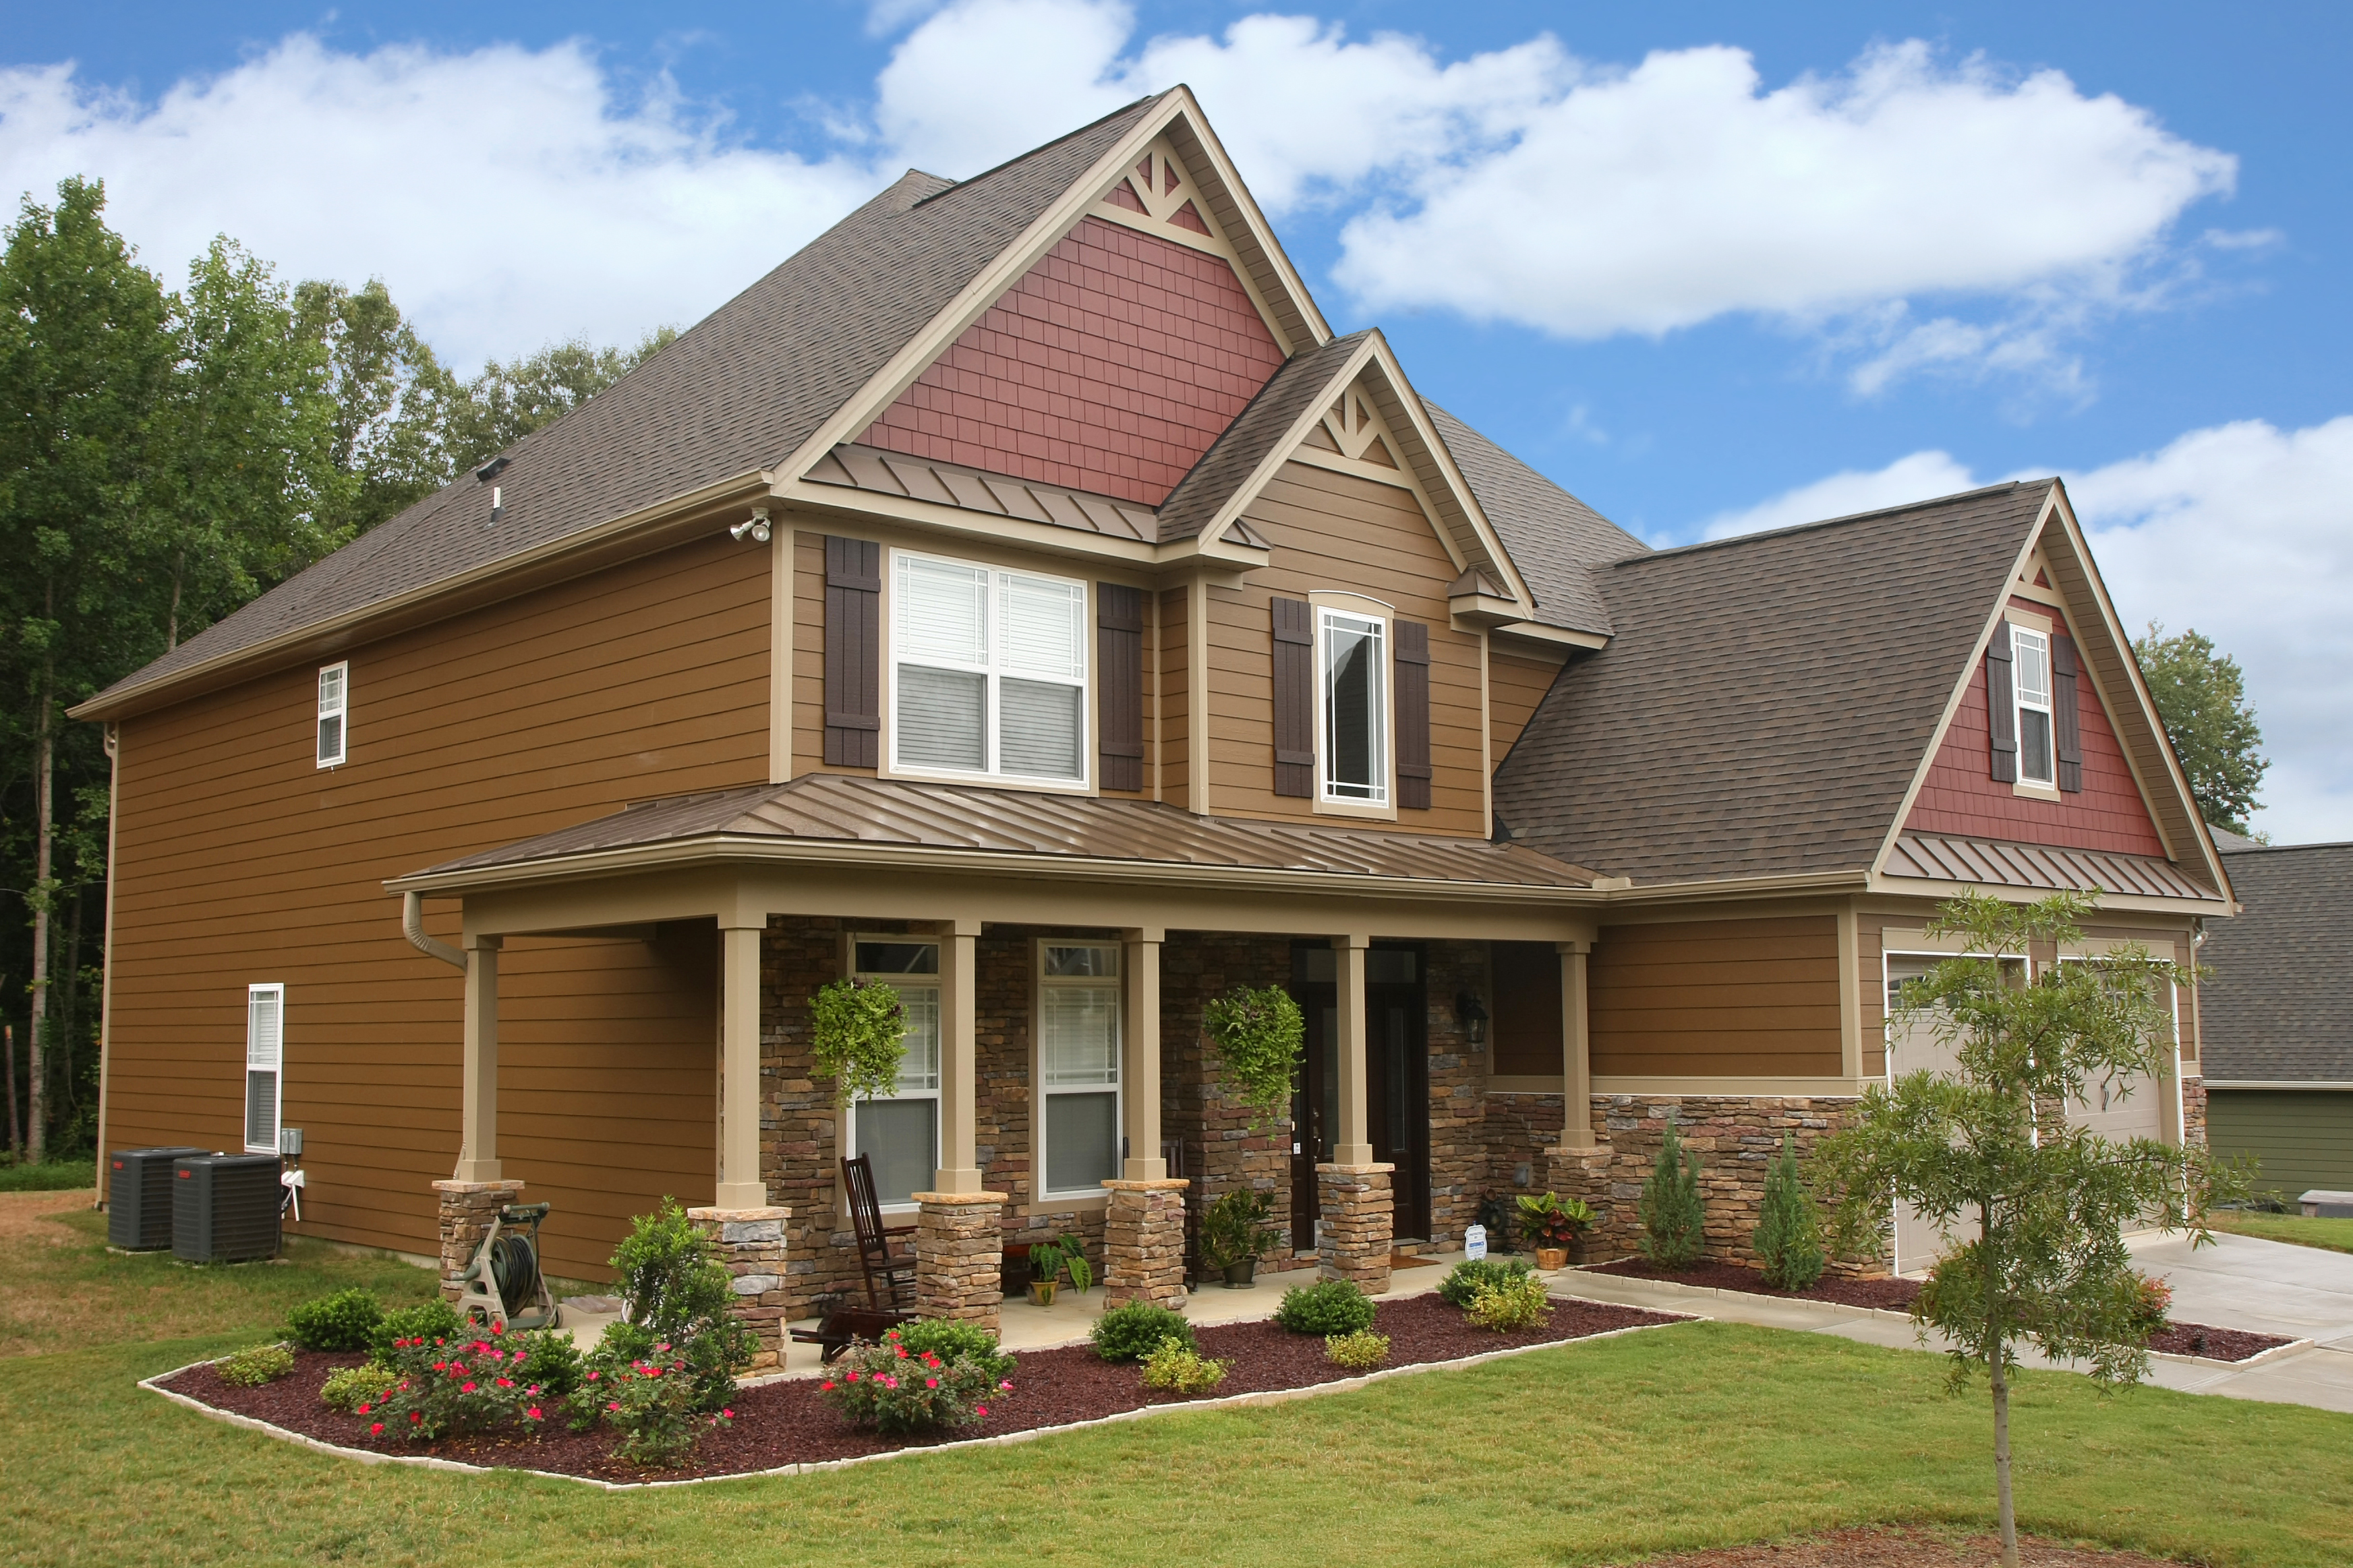 Virginia roofing siding company fiber cement siding for Hardiplank home designs